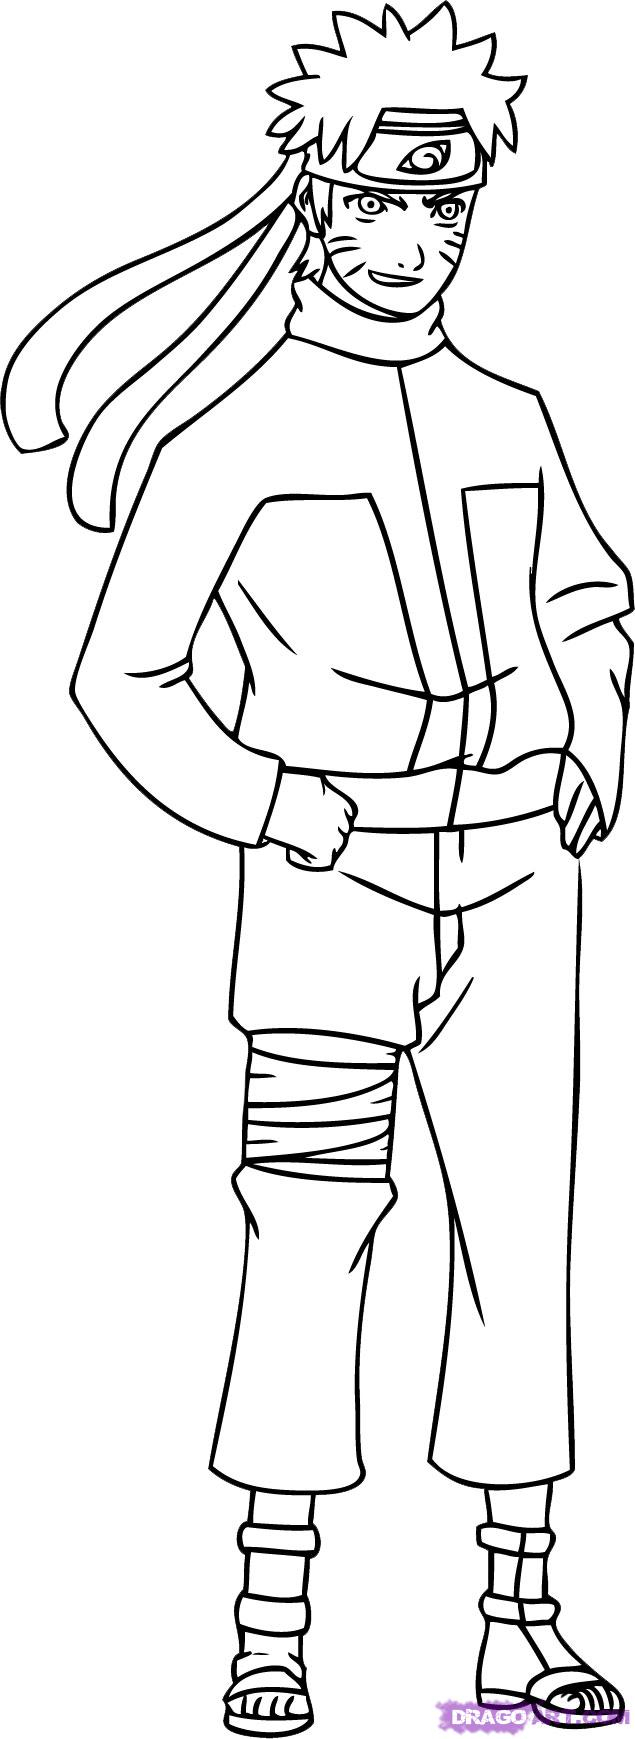 635x1739 Easy Drawings Of Naruto